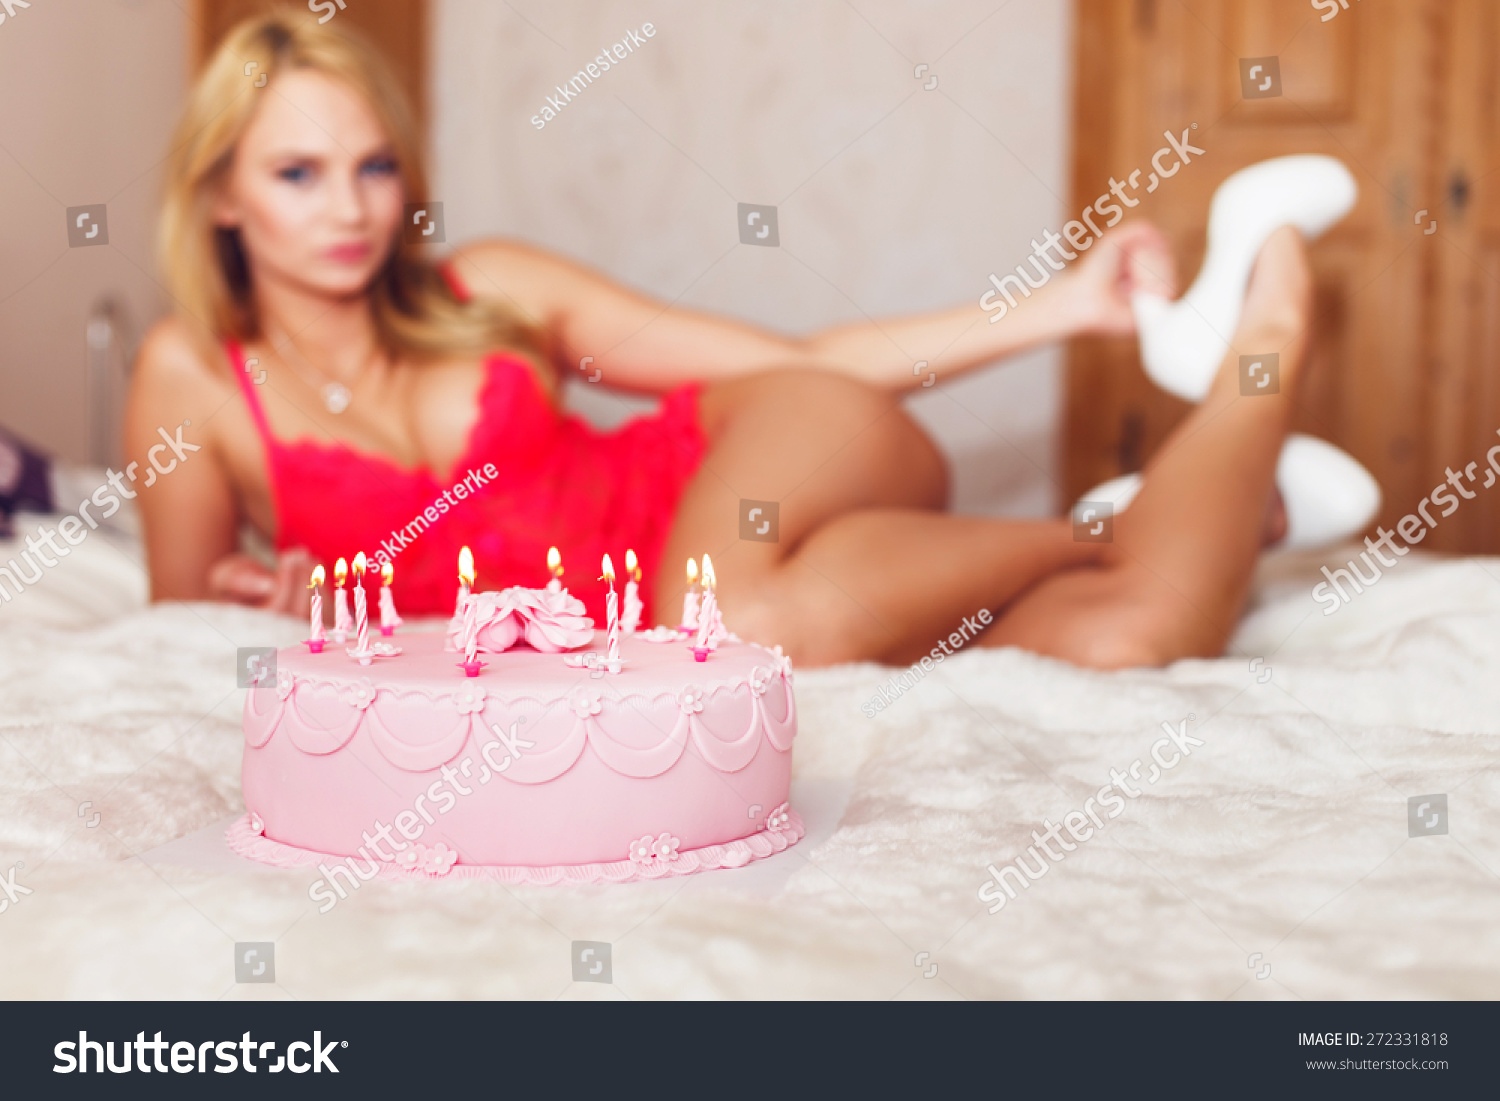 Admirable Birthday Celebration Cake Sexy Lover On Stock Photo Edit Now Personalised Birthday Cards Bromeletsinfo